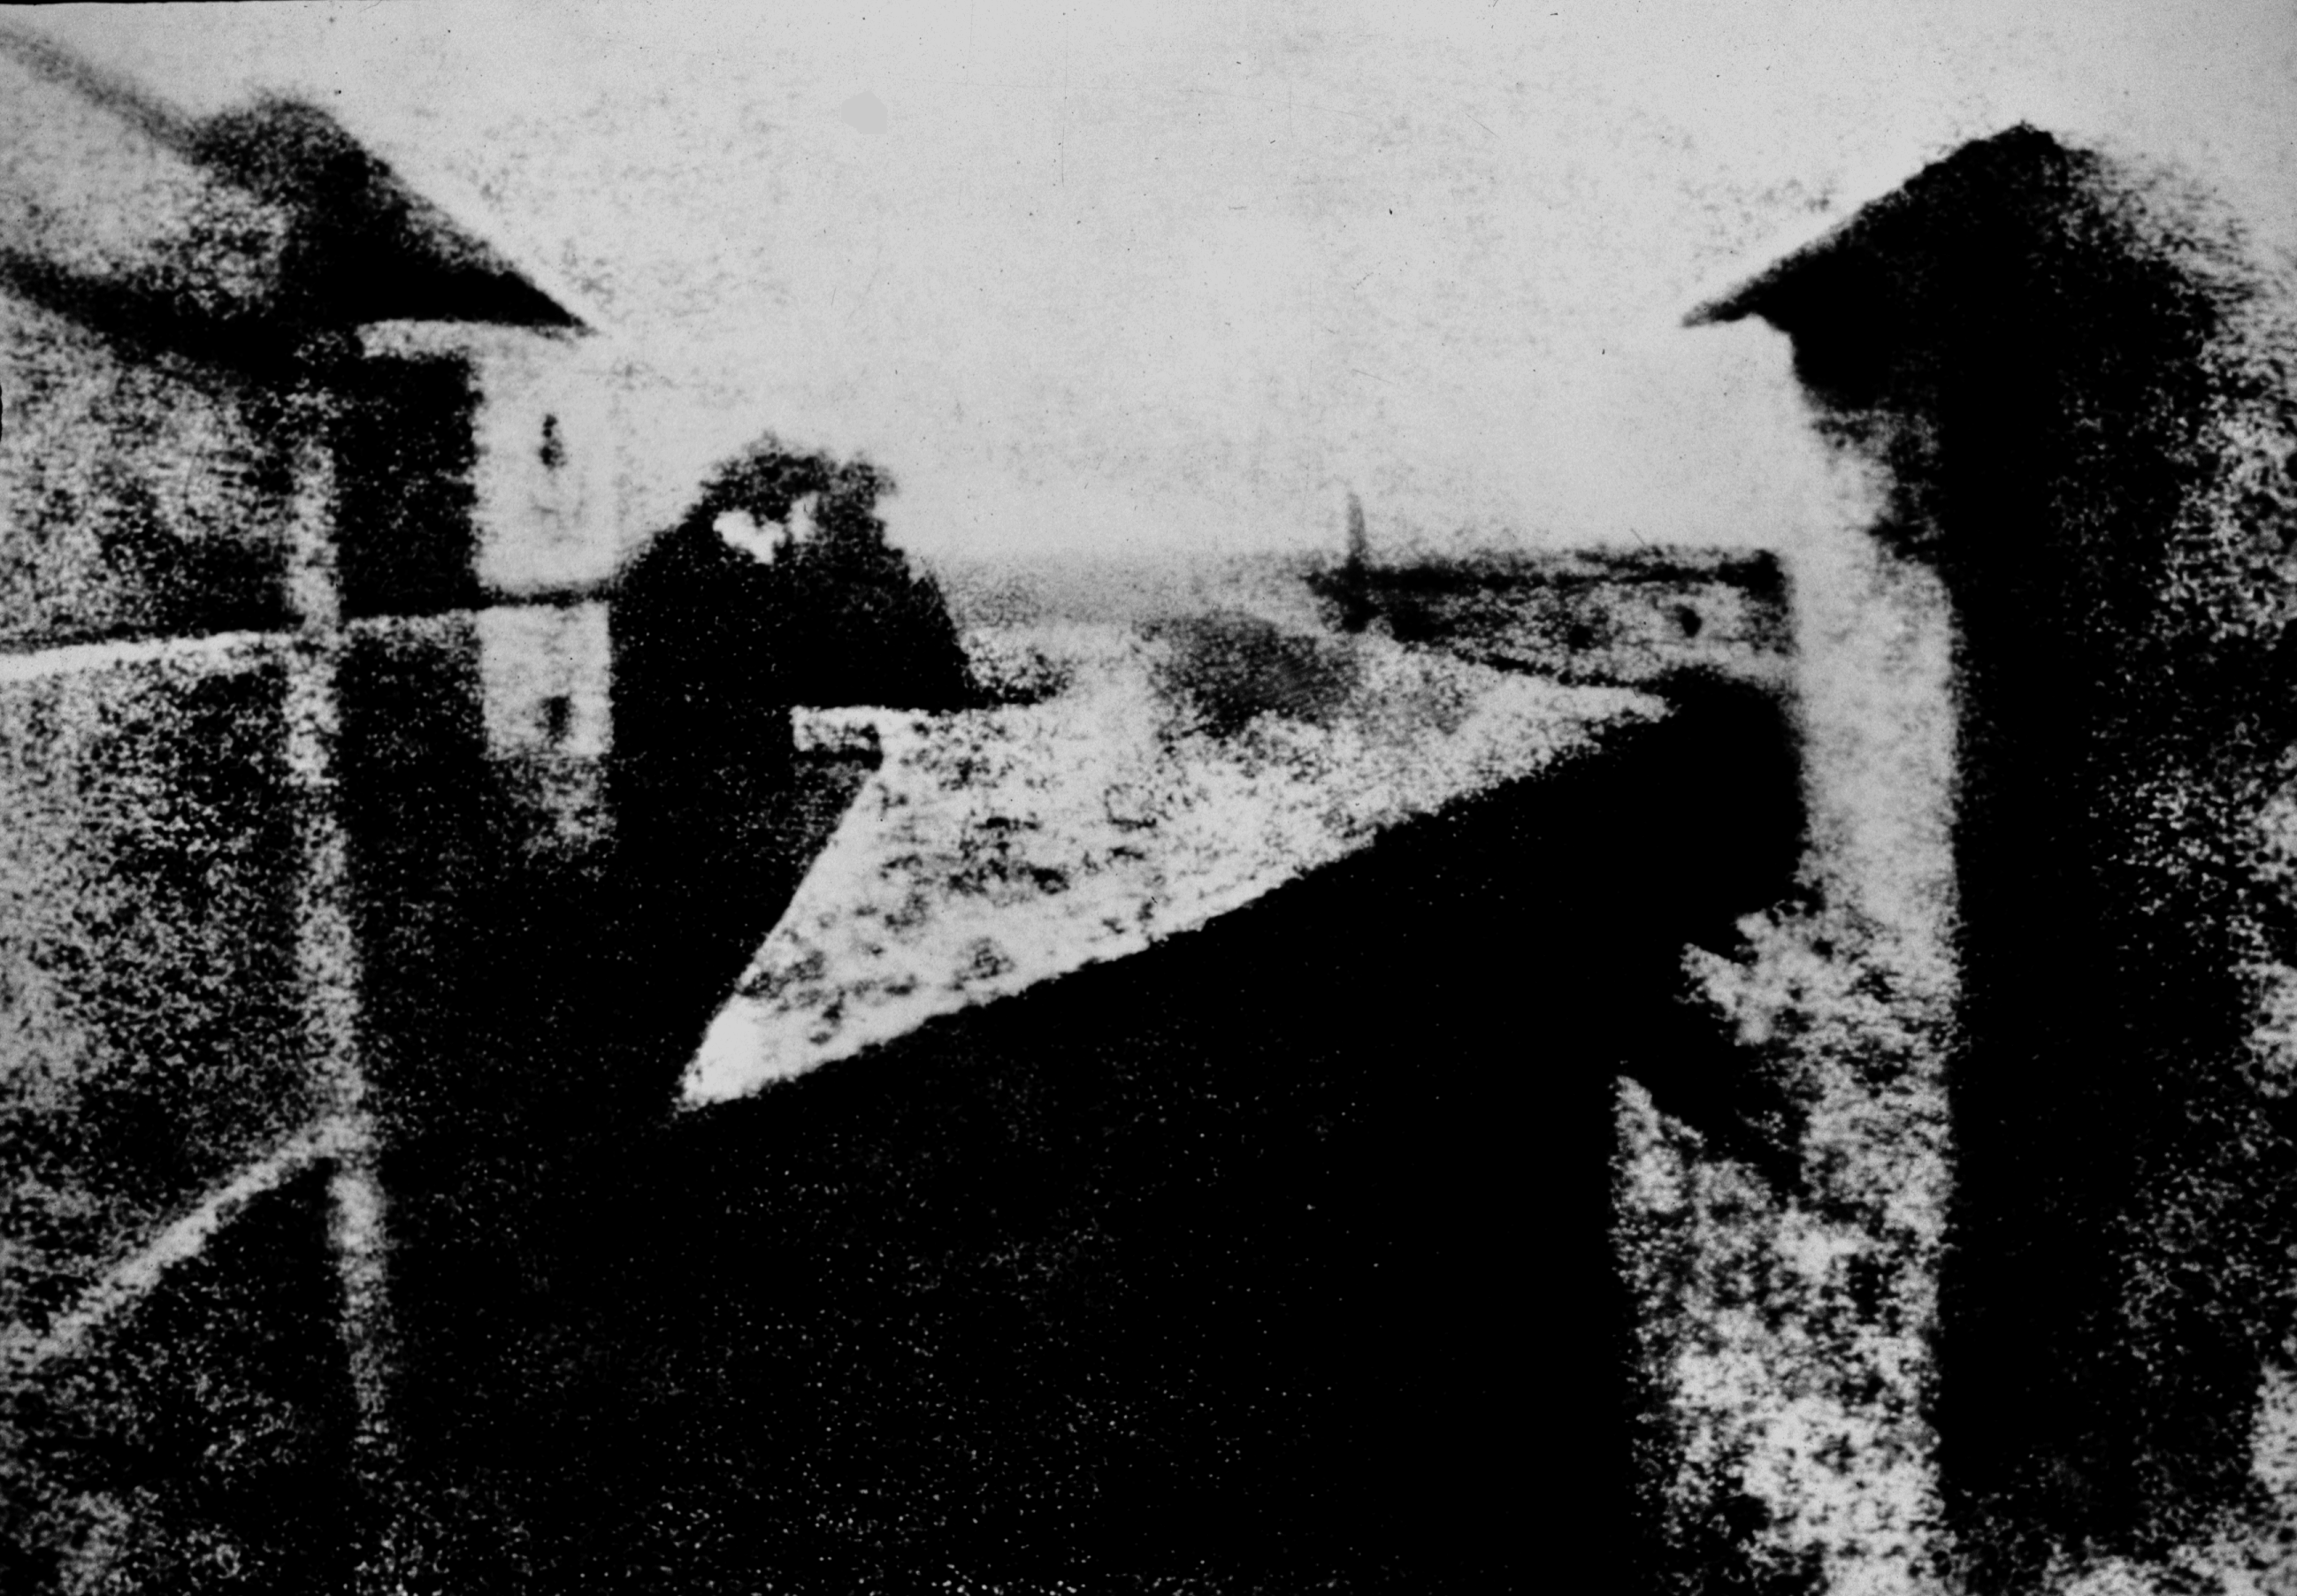 http://upload.wikimedia.org/wikipedia/commons/0/0e/View_from_the_Window_at_Le_Gras,_Joseph_Nic%C3%A9phore_Ni%C3%A9pce,_uncompressed_UMN_source.png